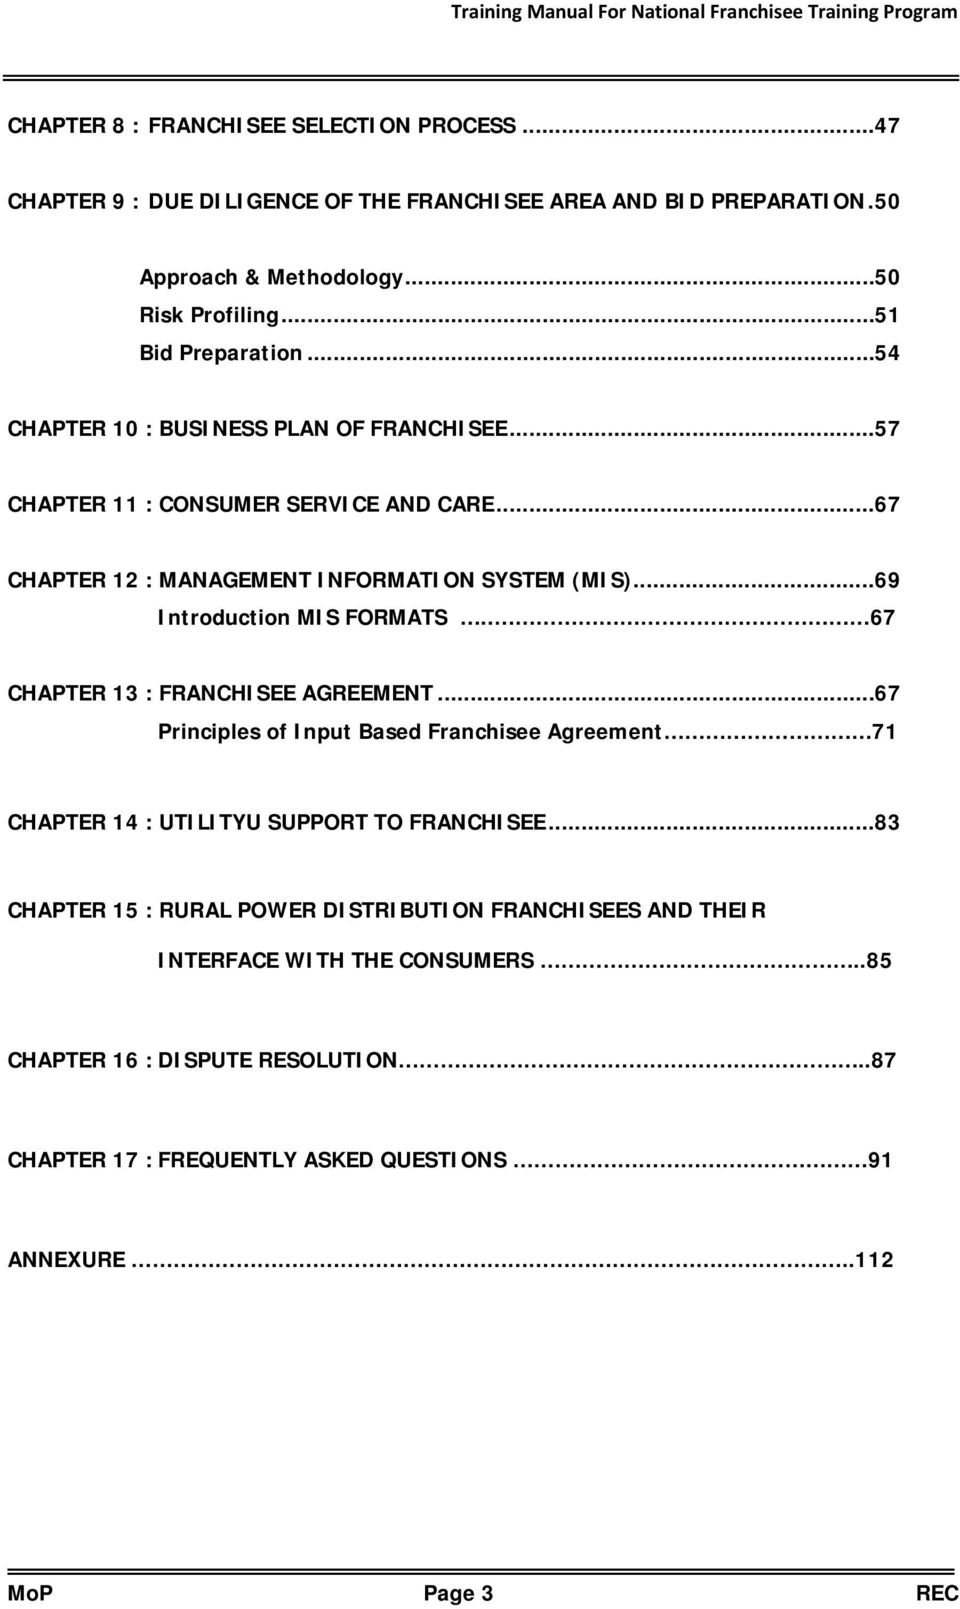 .. 69 Introduction MIS FORMATS.. 67 CHAPTER 13 : FRANCHISEE AGREEMENT... 67 Principles of Input Based Franchisee Agreement 71 CHAPTER 14 : UTILITYU SUPPORT TO FRANCHISEE.